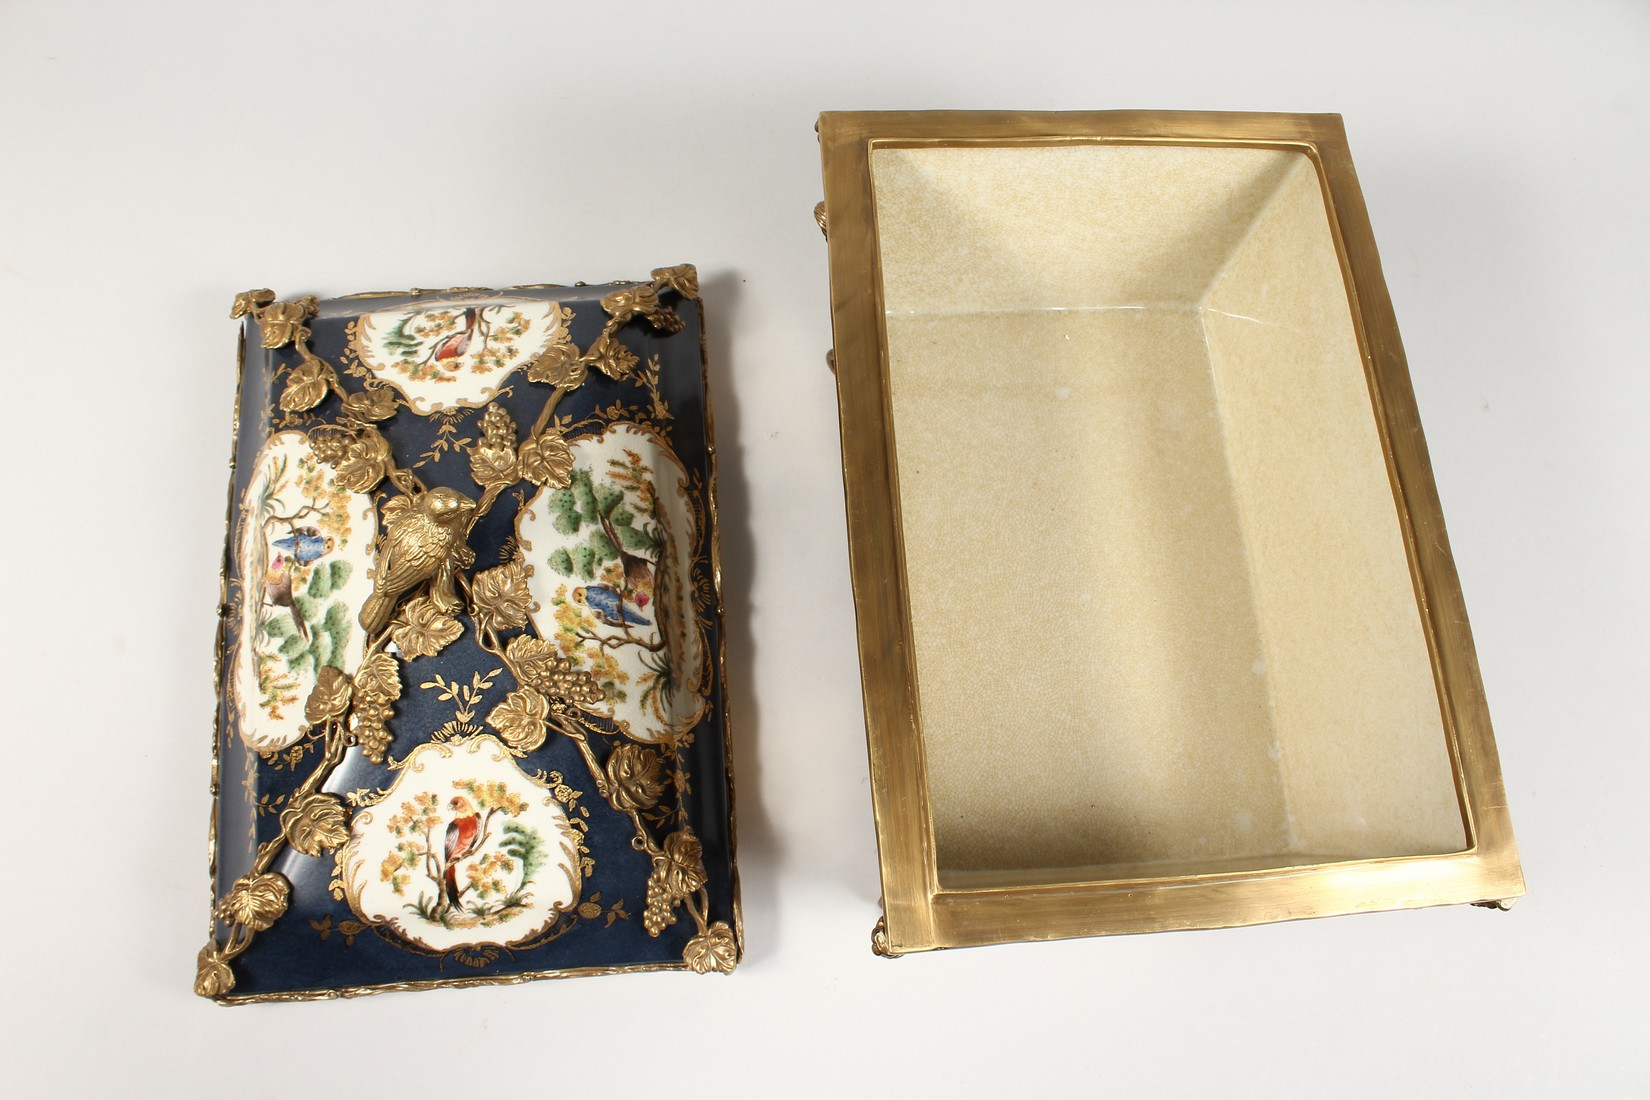 A DECORATIVE PORCELAIN AND ORMOLU MOUNTED SEVRES STYLE CASKET AND COVER. 15ins long - Image 3 of 5